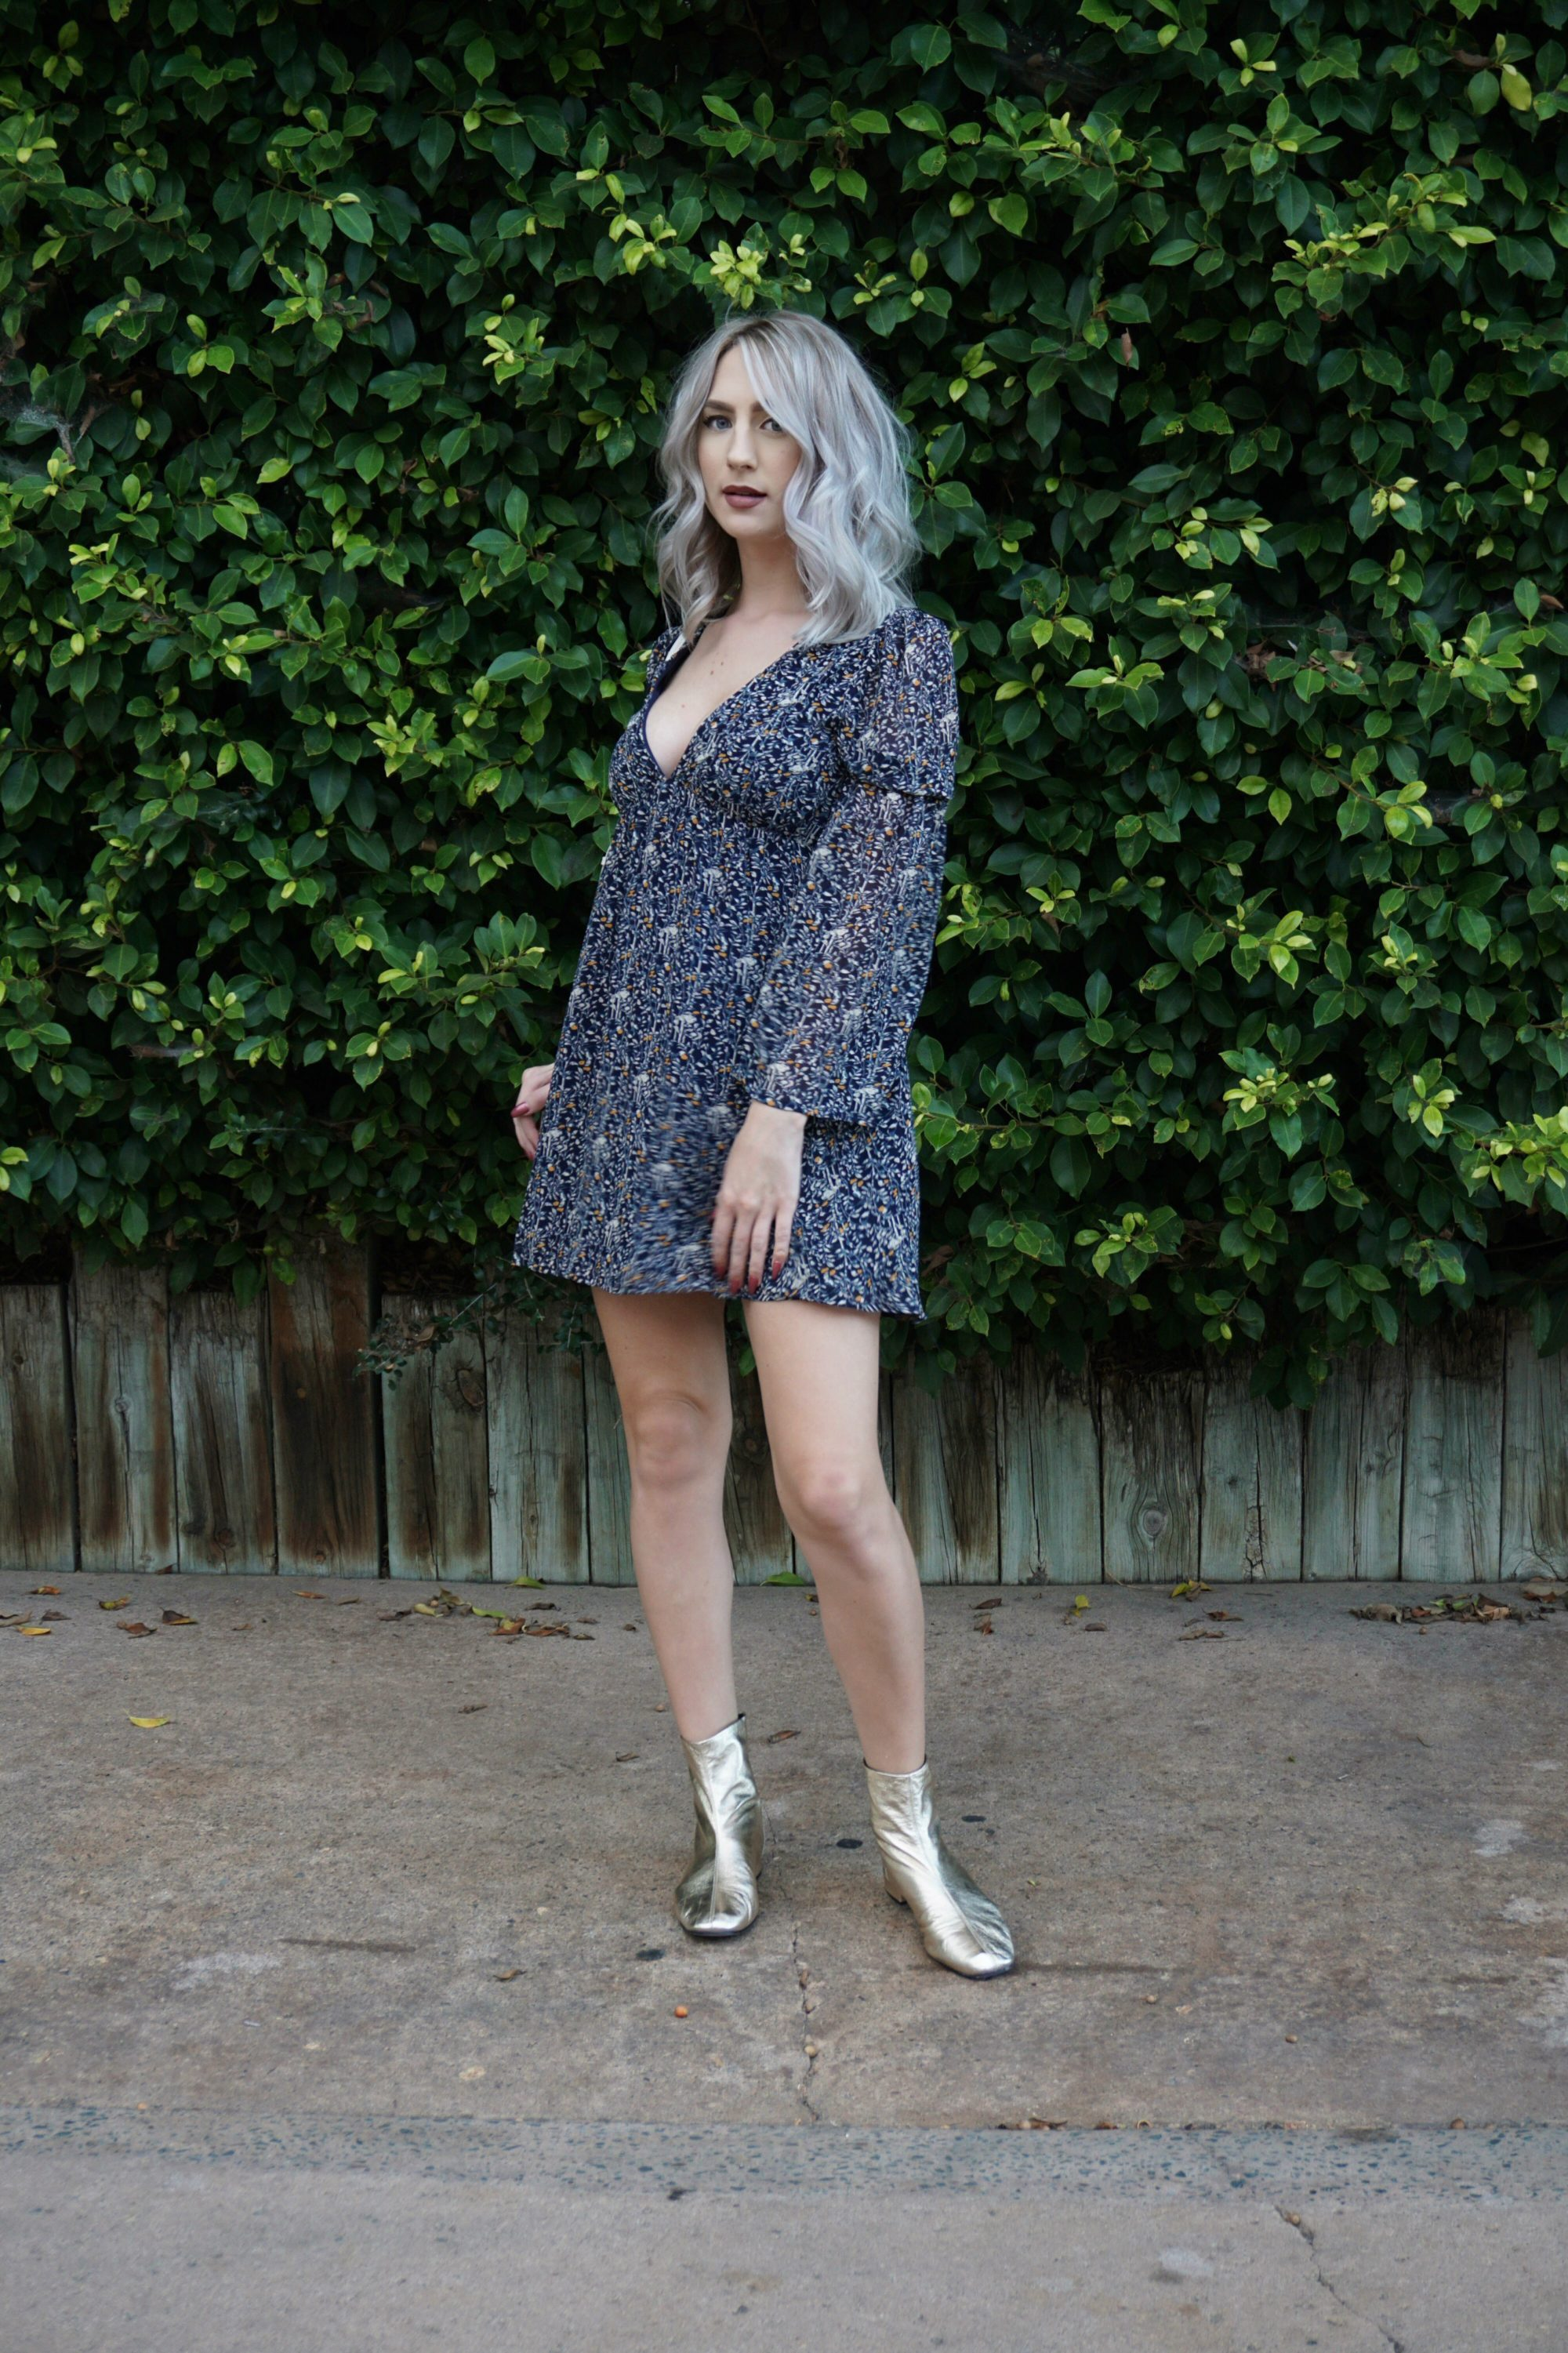 Introducing Fall With Babydoll Dresses & Gold Boots